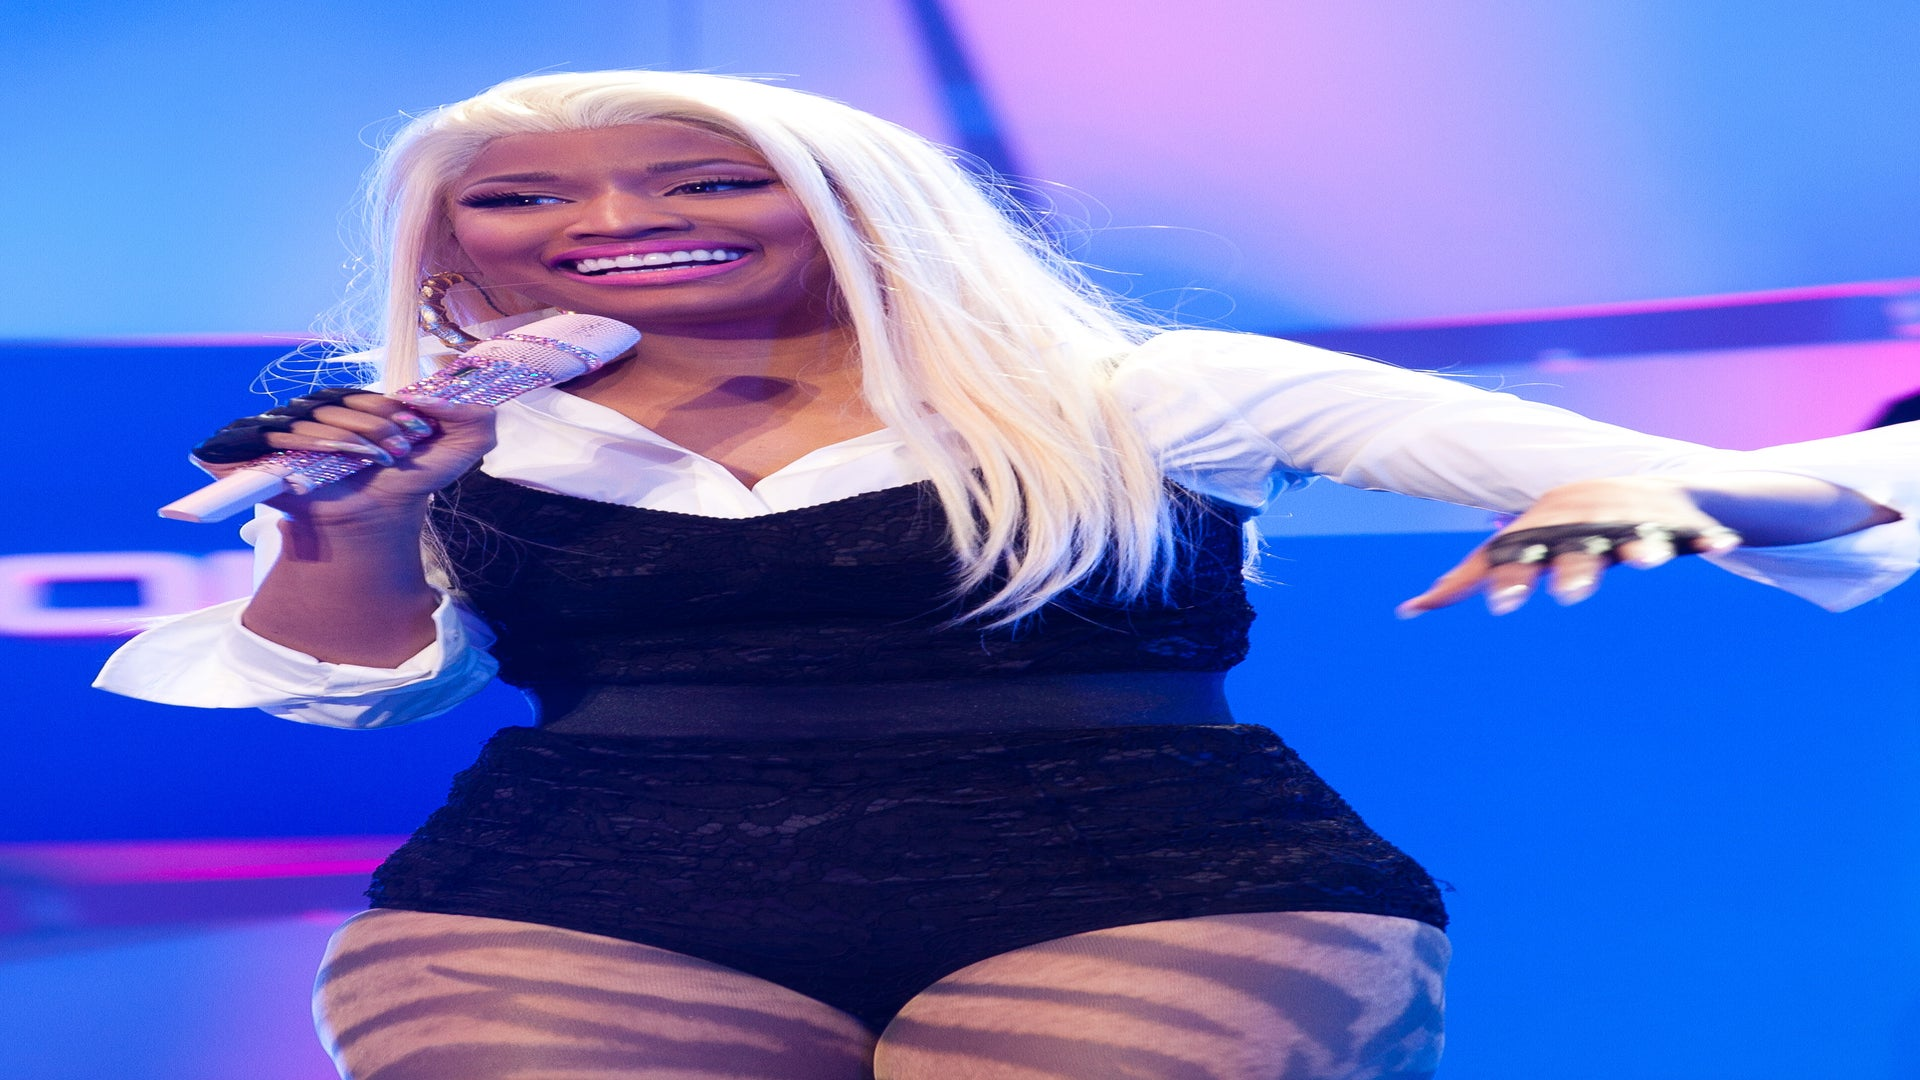 Poll: Should Nicki Minaj Have Pulled Out of the Summer Jam Concert?